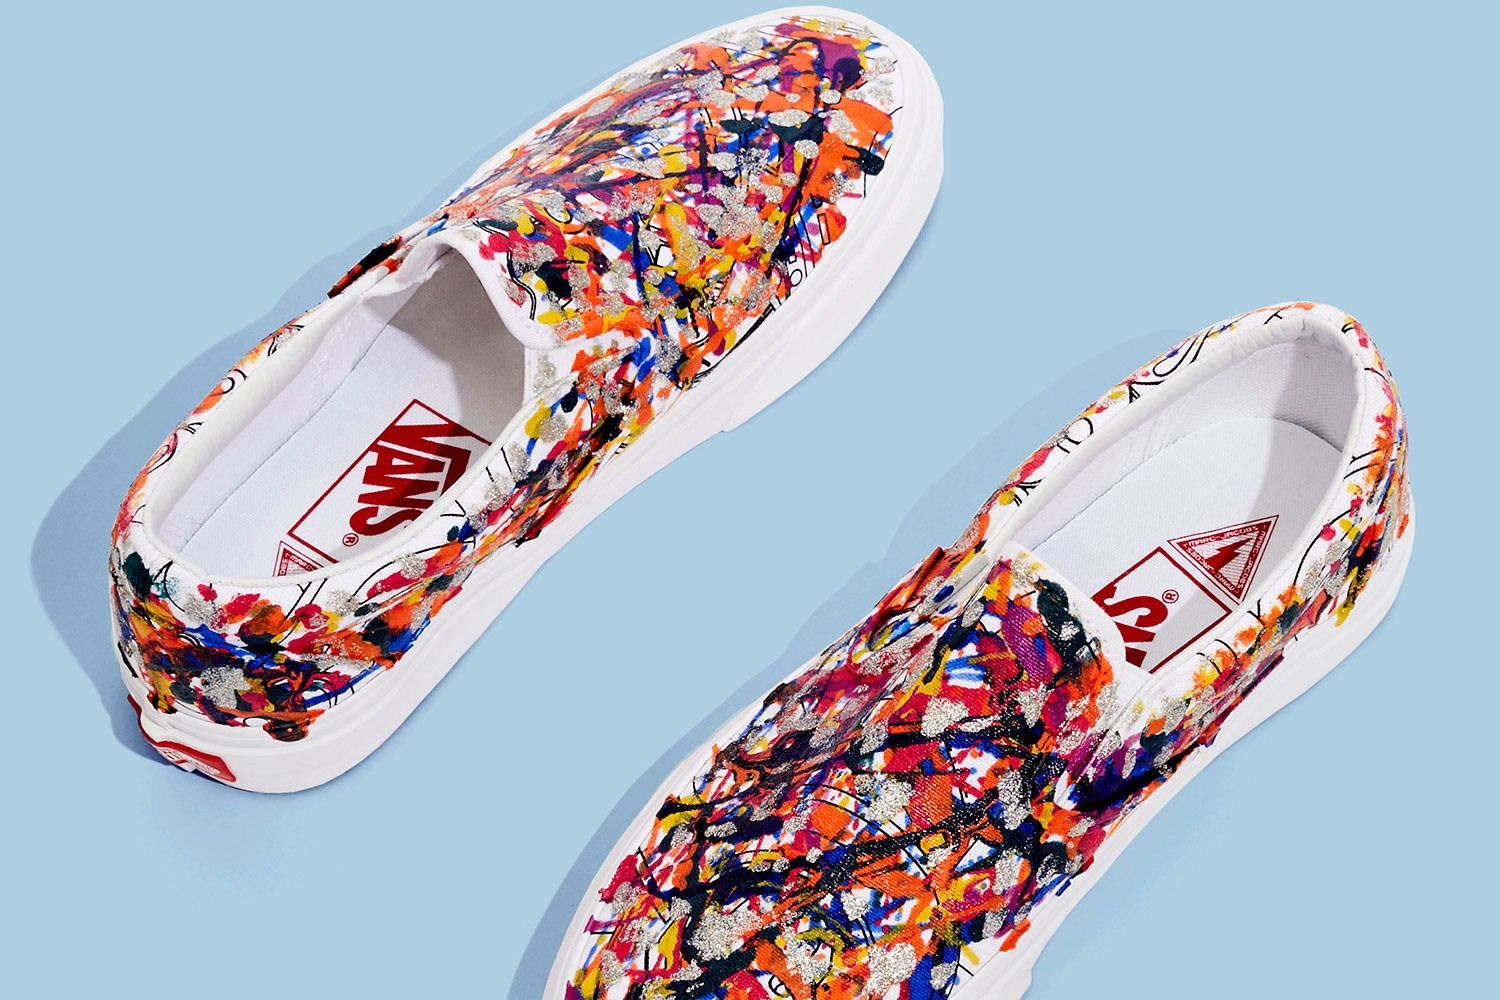 marc jacobs and vans slip on capsule collection - the chicflaneuse.com 11